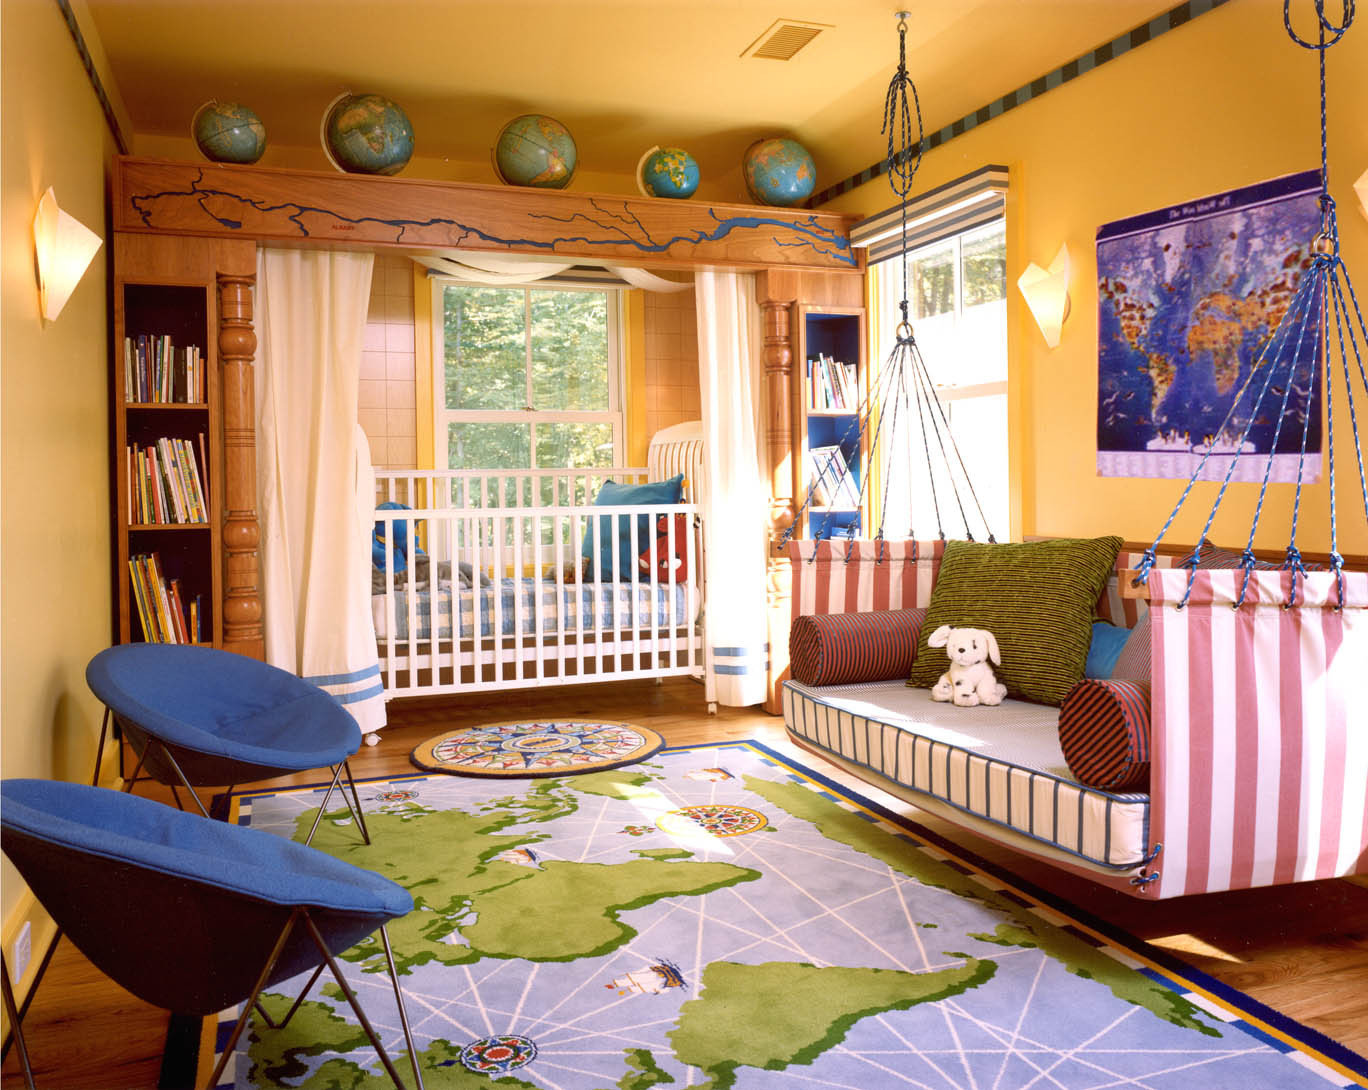 Best ideas about Kids Room Themes . Save or Pin 15 Nice Kids Room Decor Ideas With Example Pics Now.